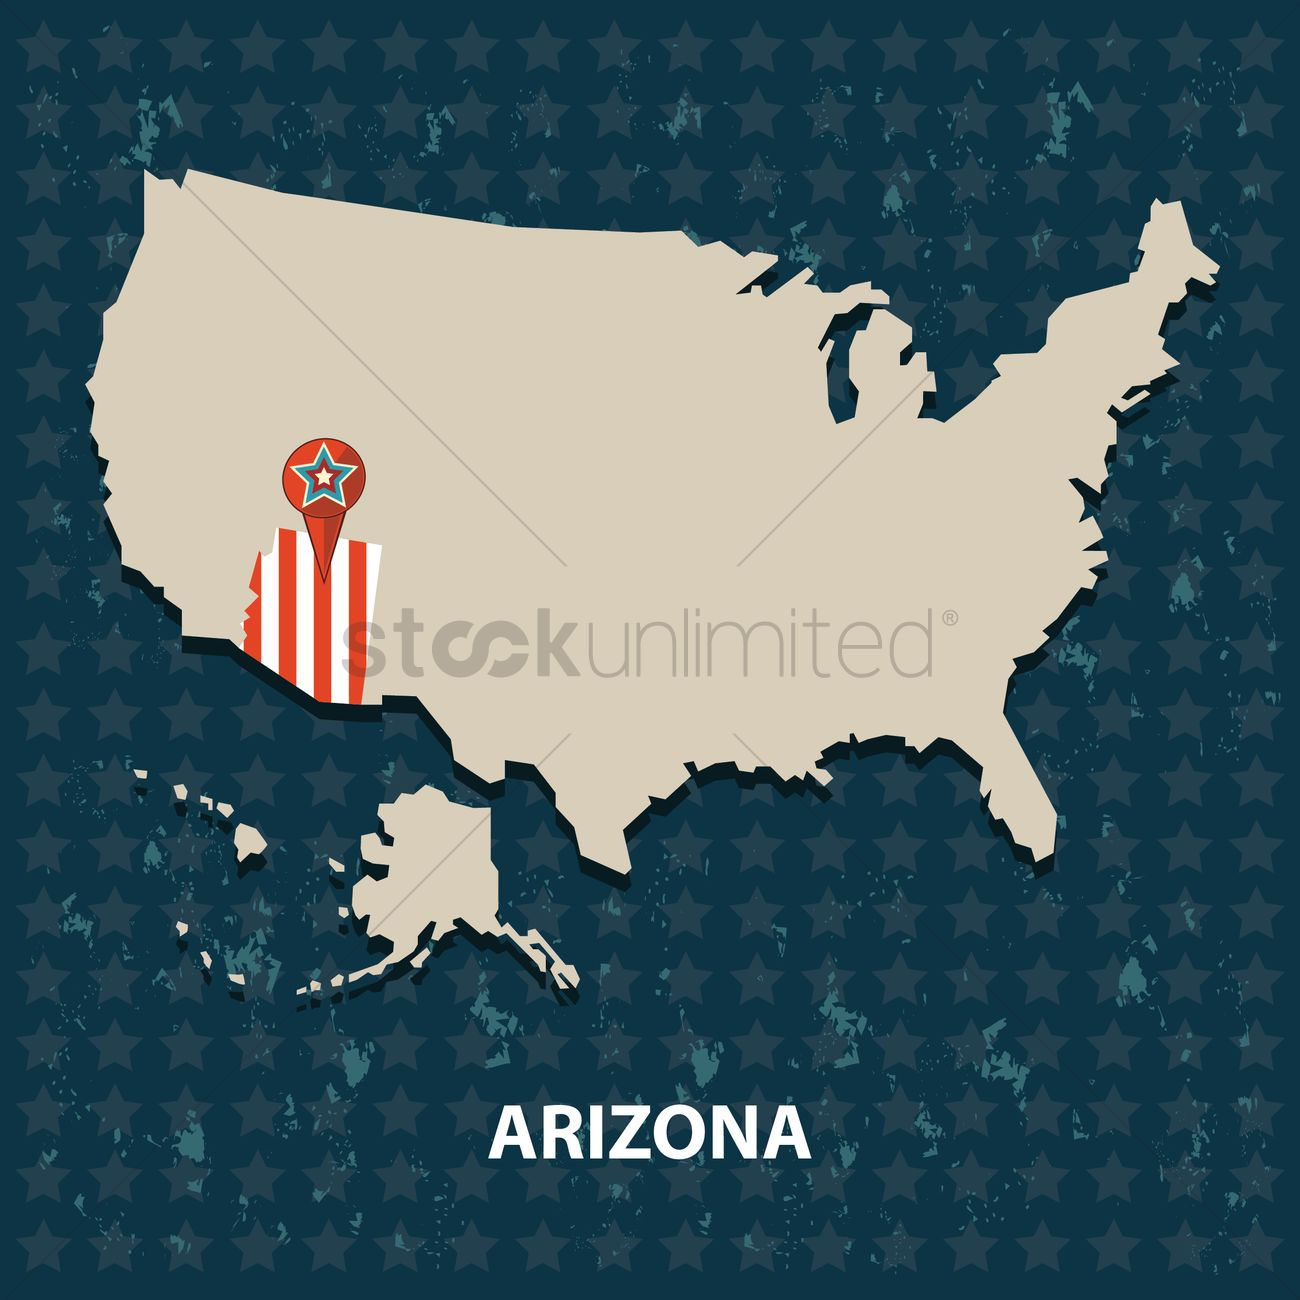 Arizona state on the map of usa Vector Image - 1552239 | StockUnlimited